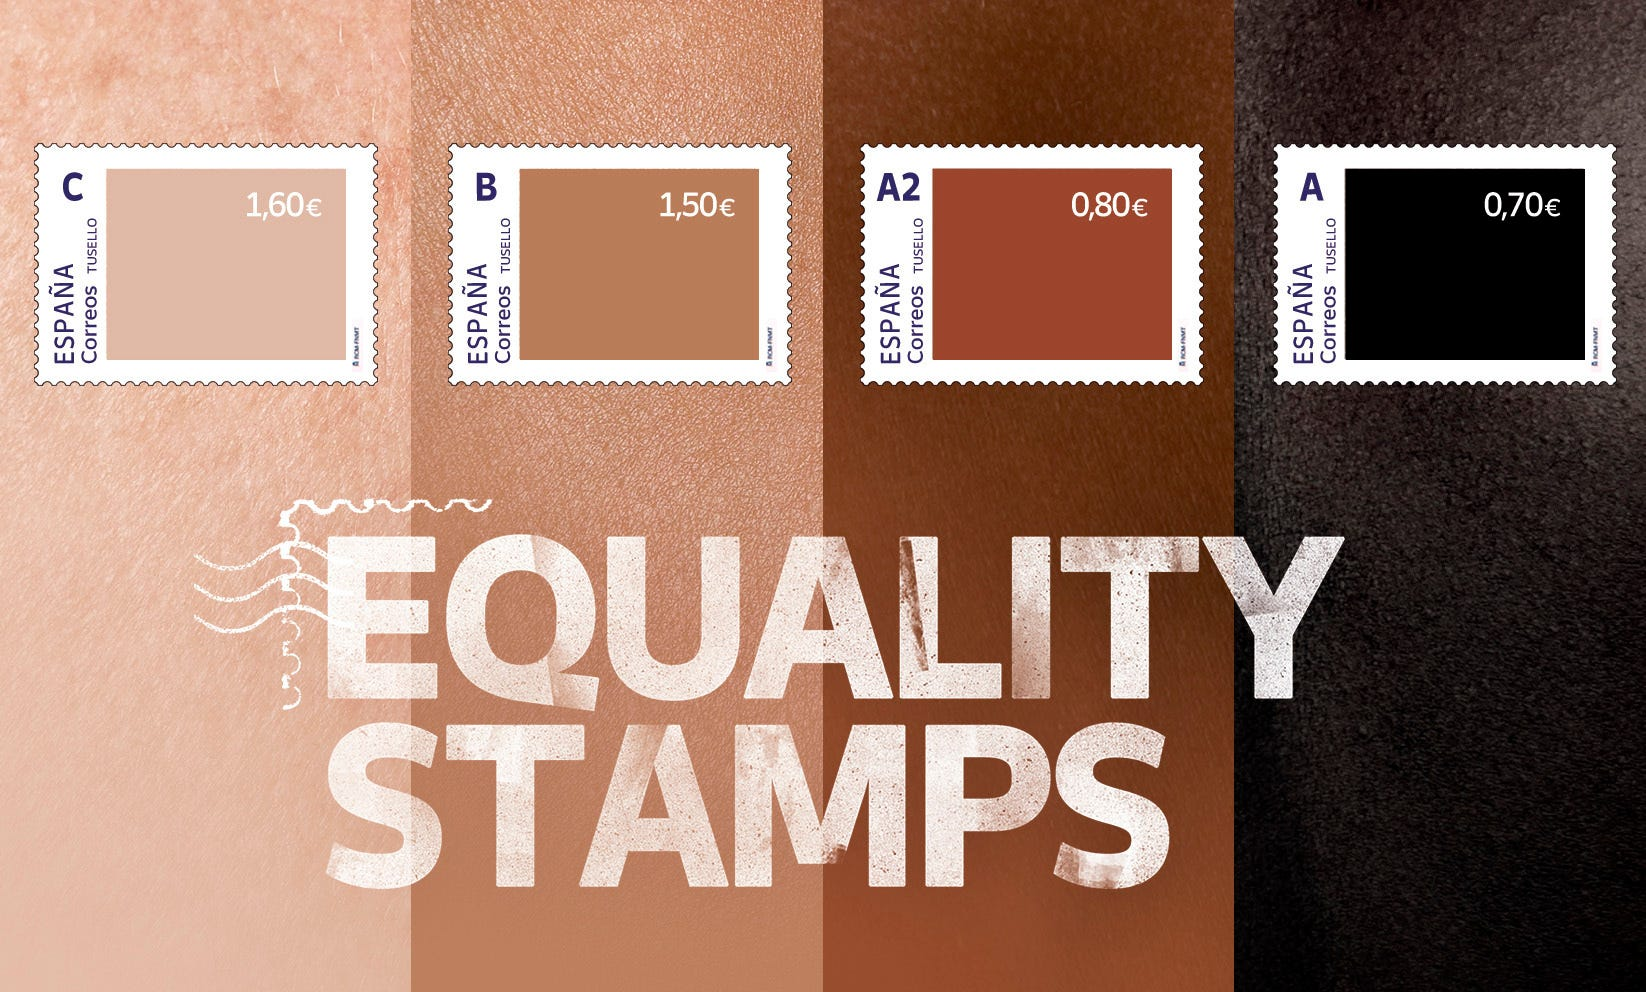 Spain criticized for unequally priced 'equality stamps' 2